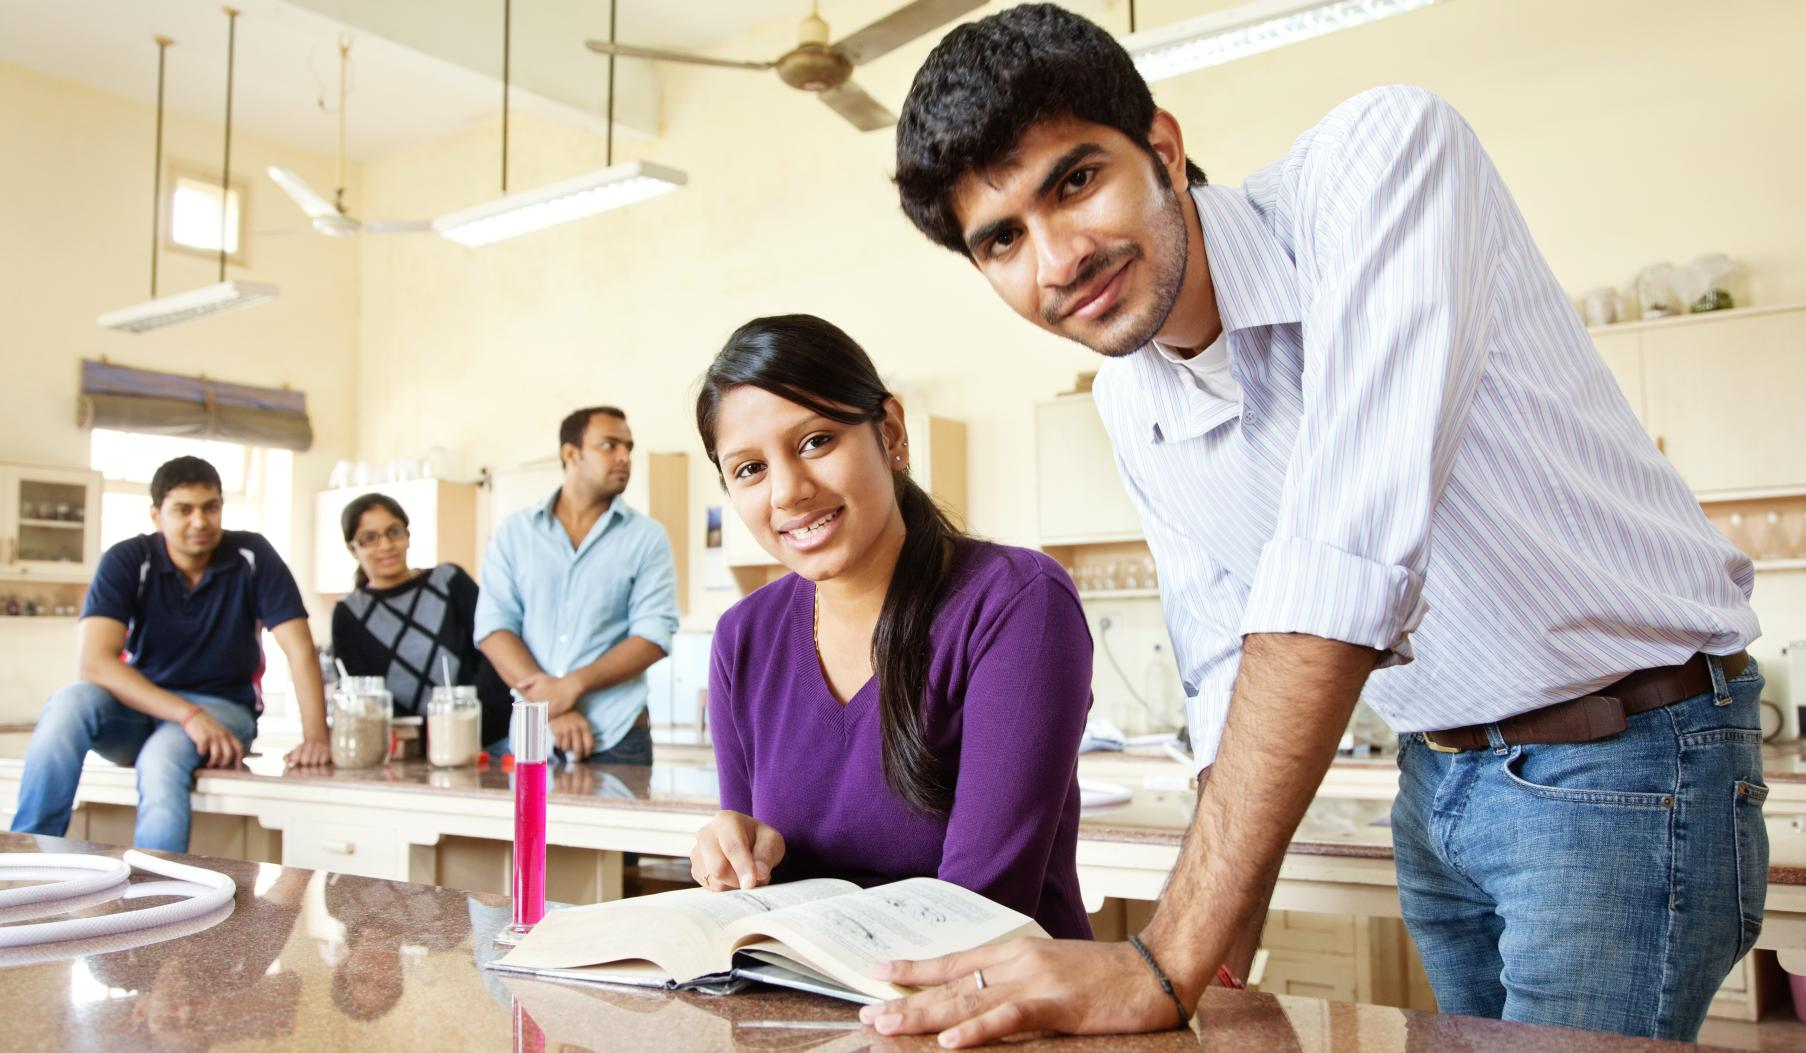 India's edtech startup CollegeDekho raises $8 million to